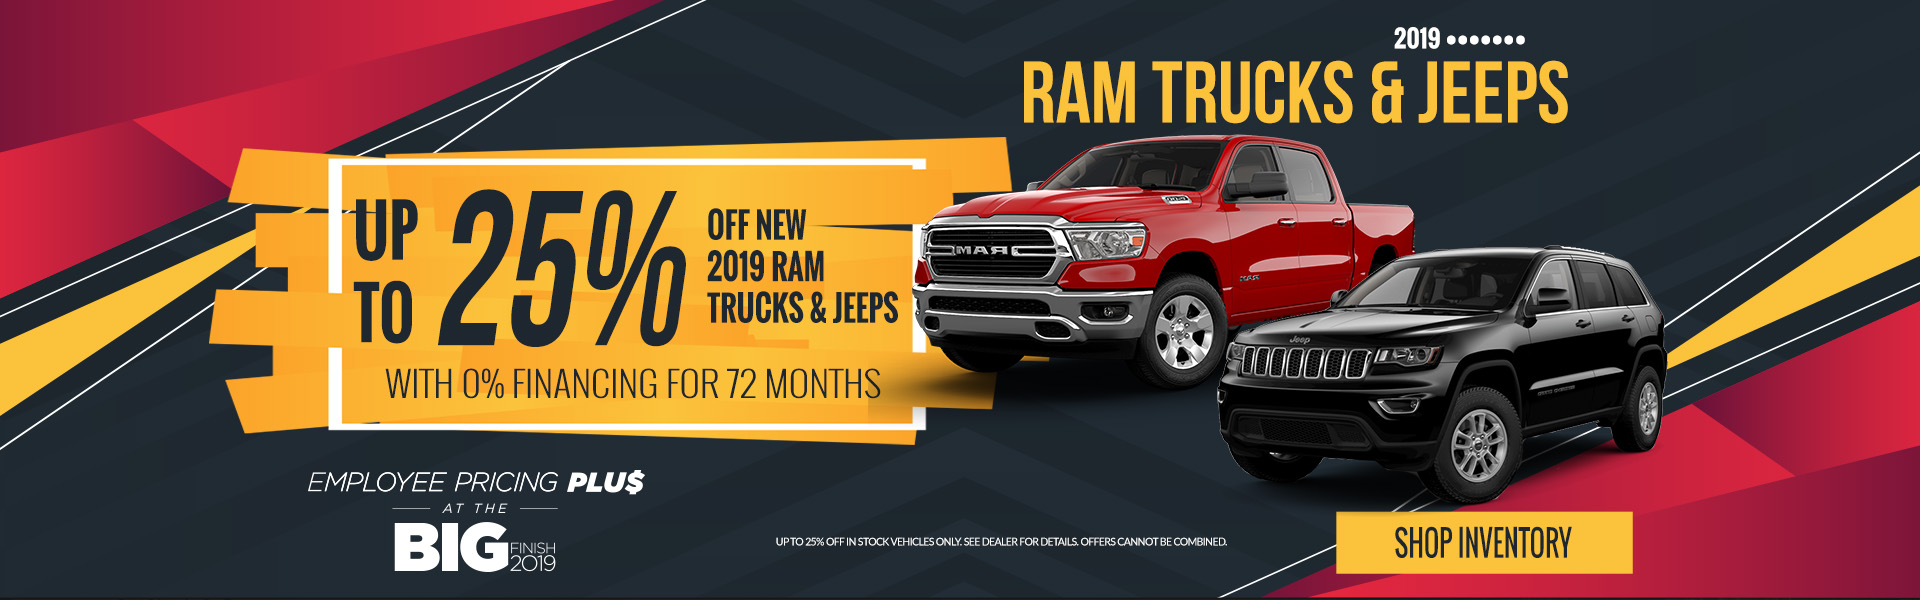 Up to 25% off Ram Trucks and Jeeps